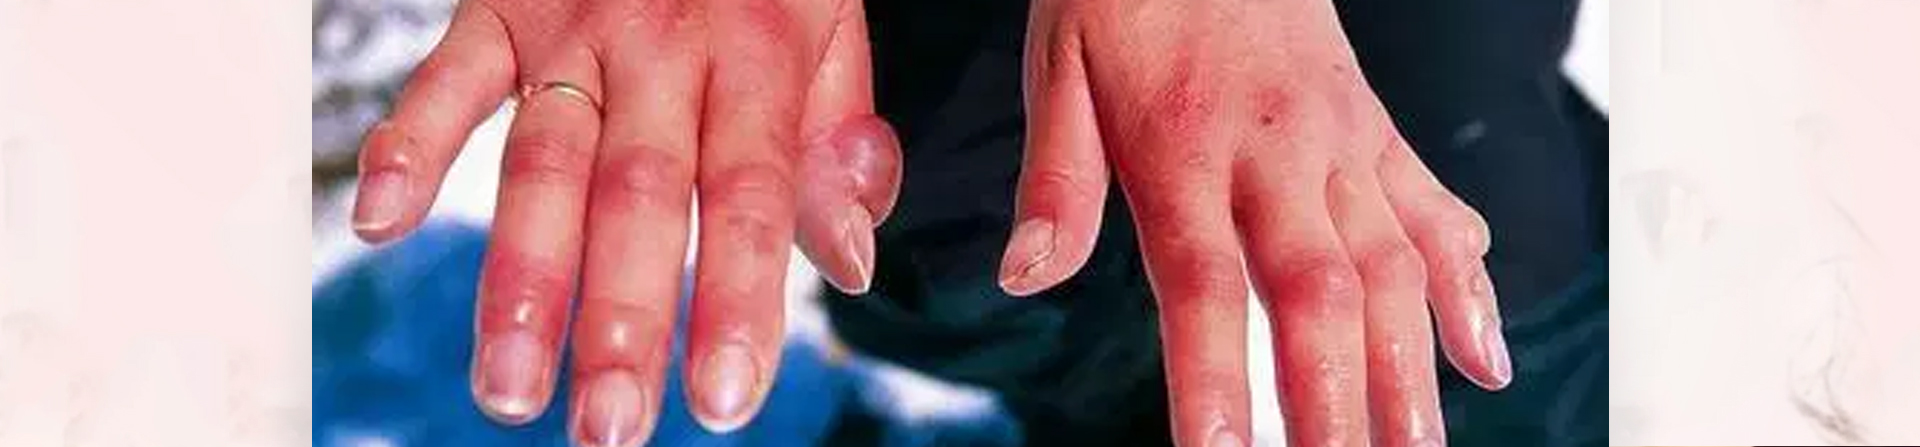 Best Leprosy Treatment Clinic in Odisha